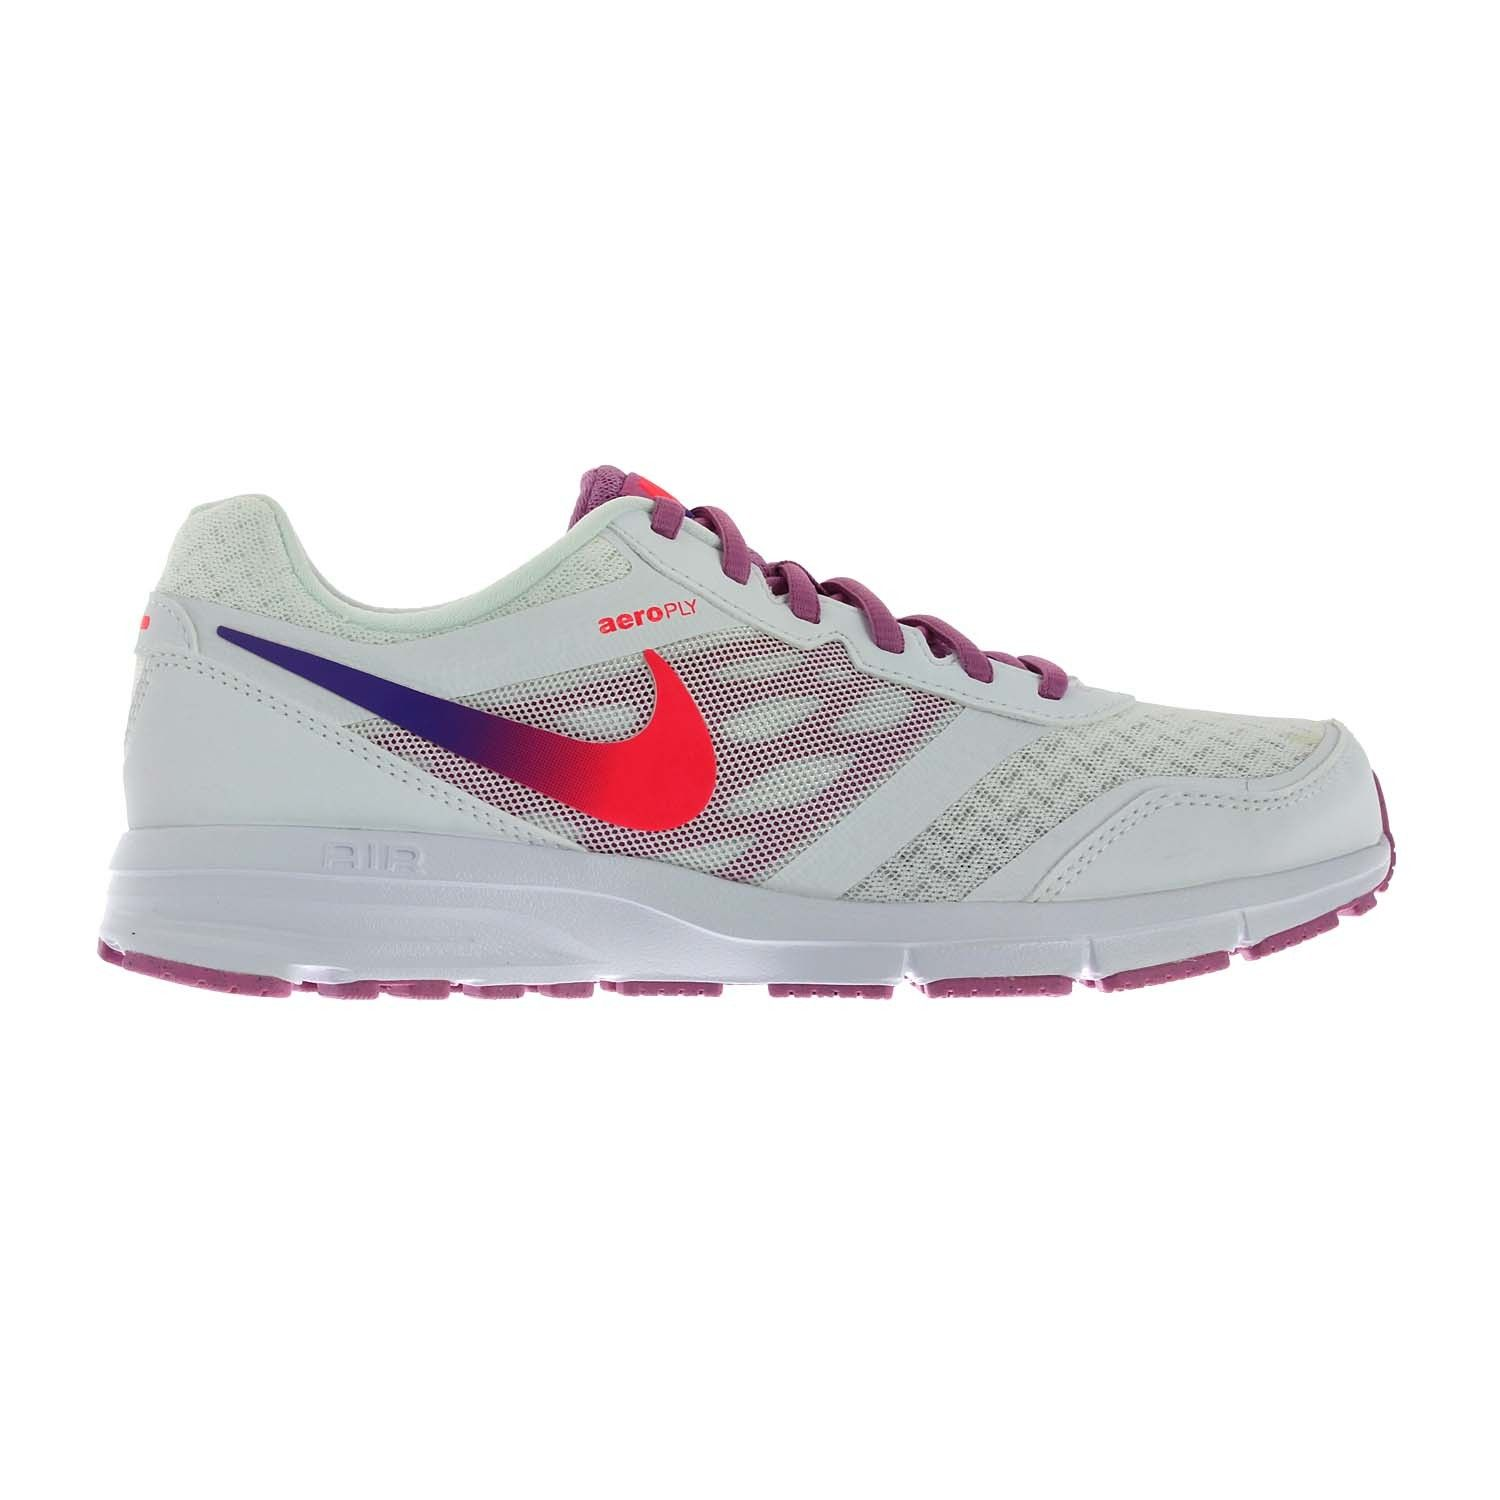 Nike Air Relentless 4 MSL (685152-100)